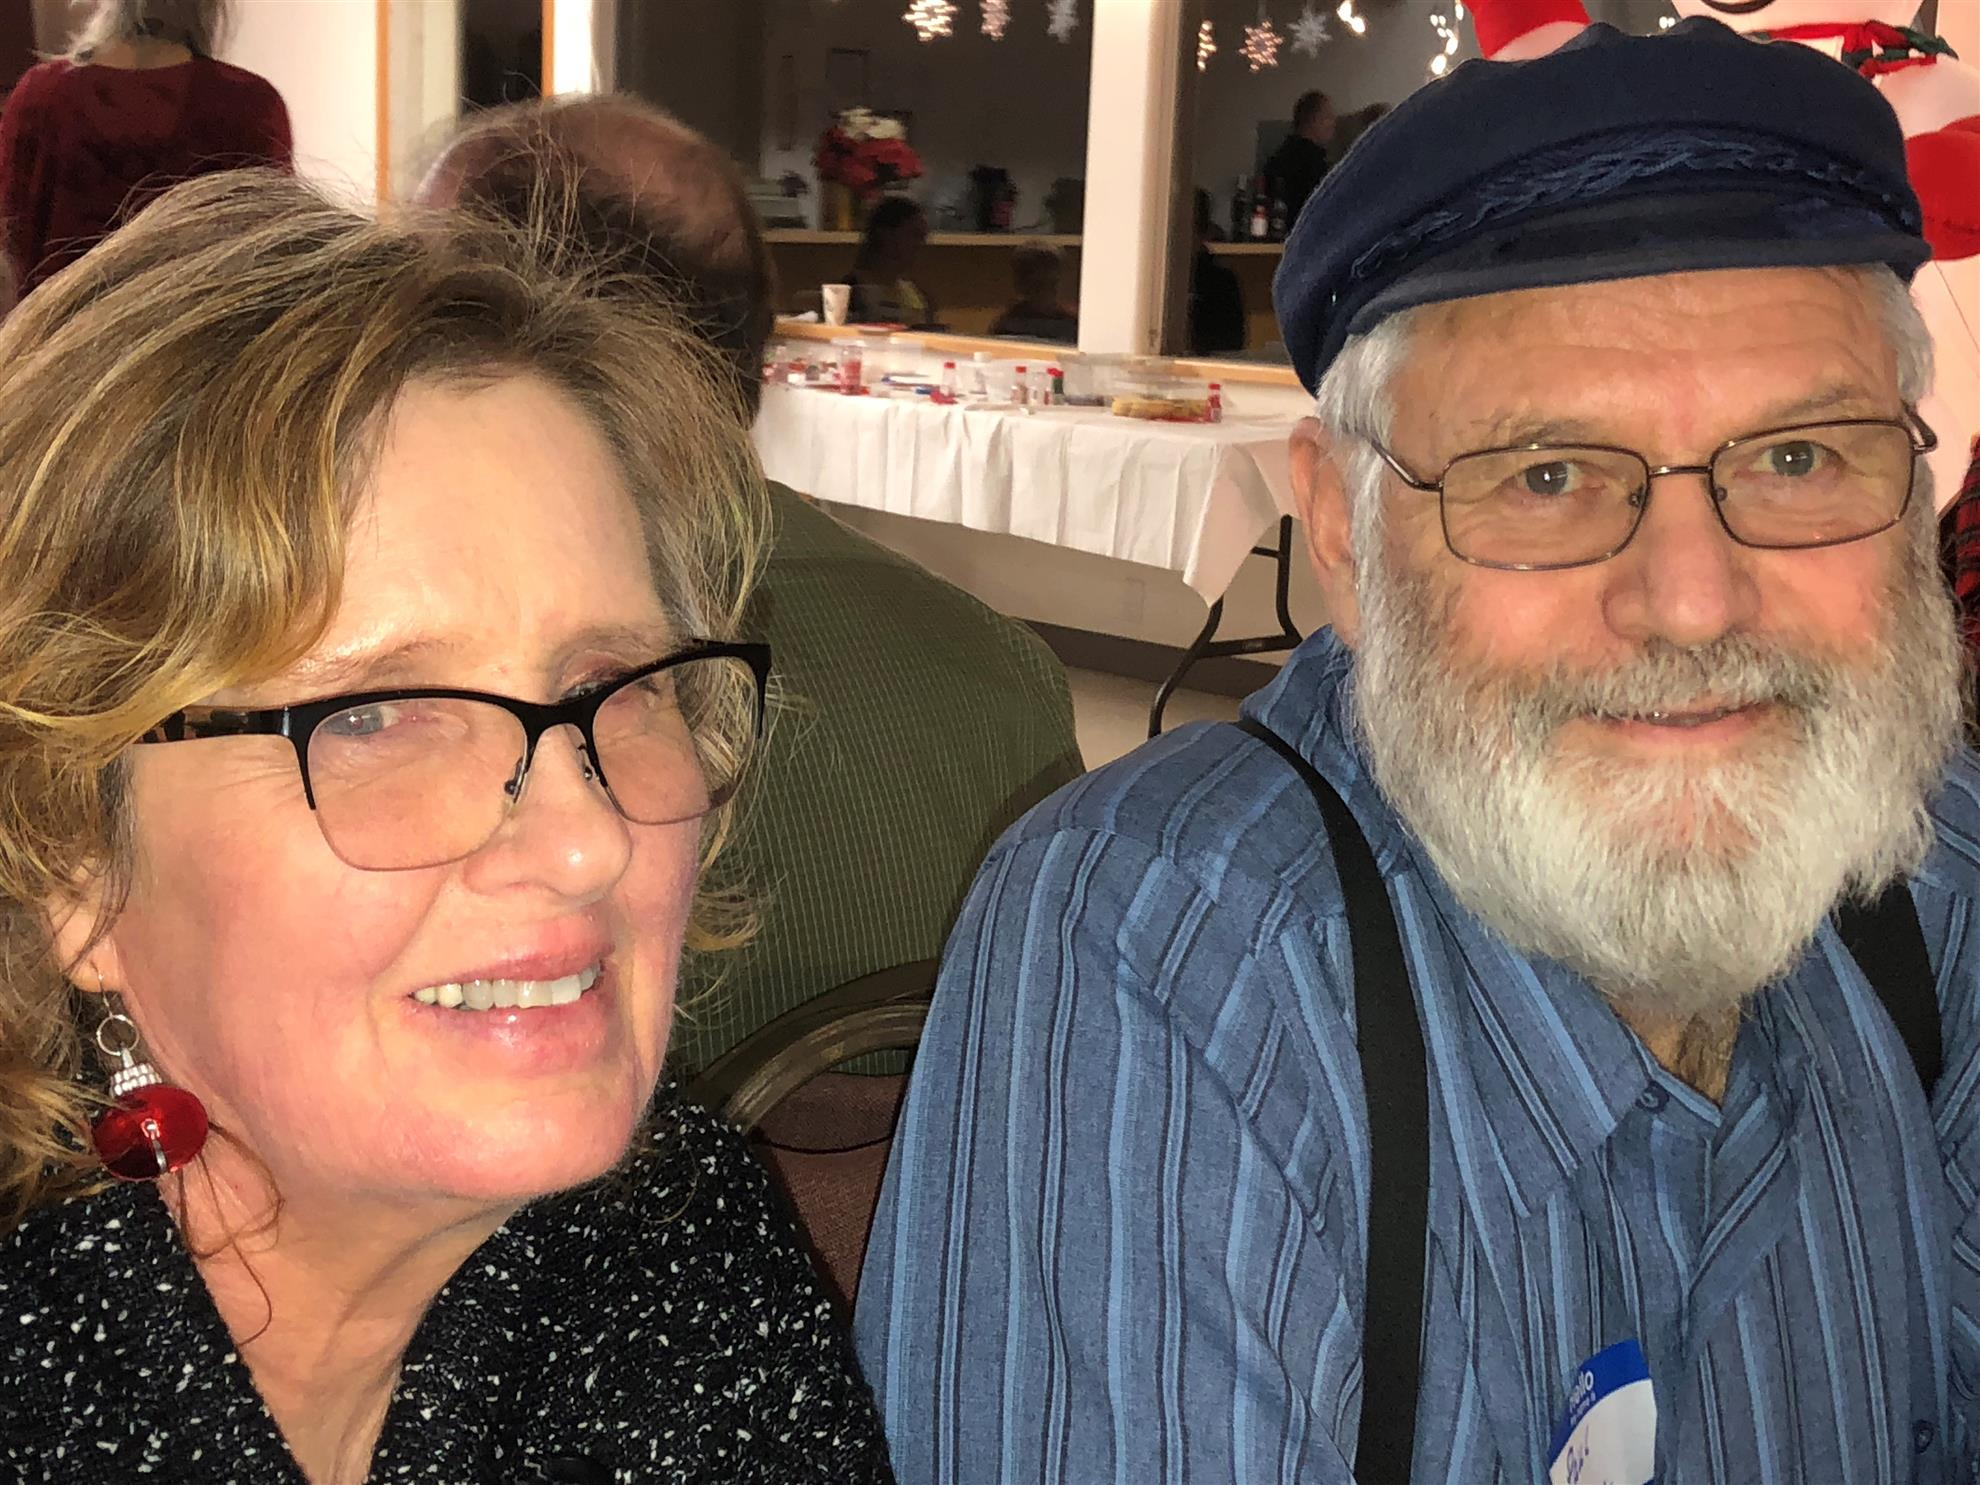 dbab47c4d13 Some pictures of the 2018 Holiday Party. Great company and Fantastic food!